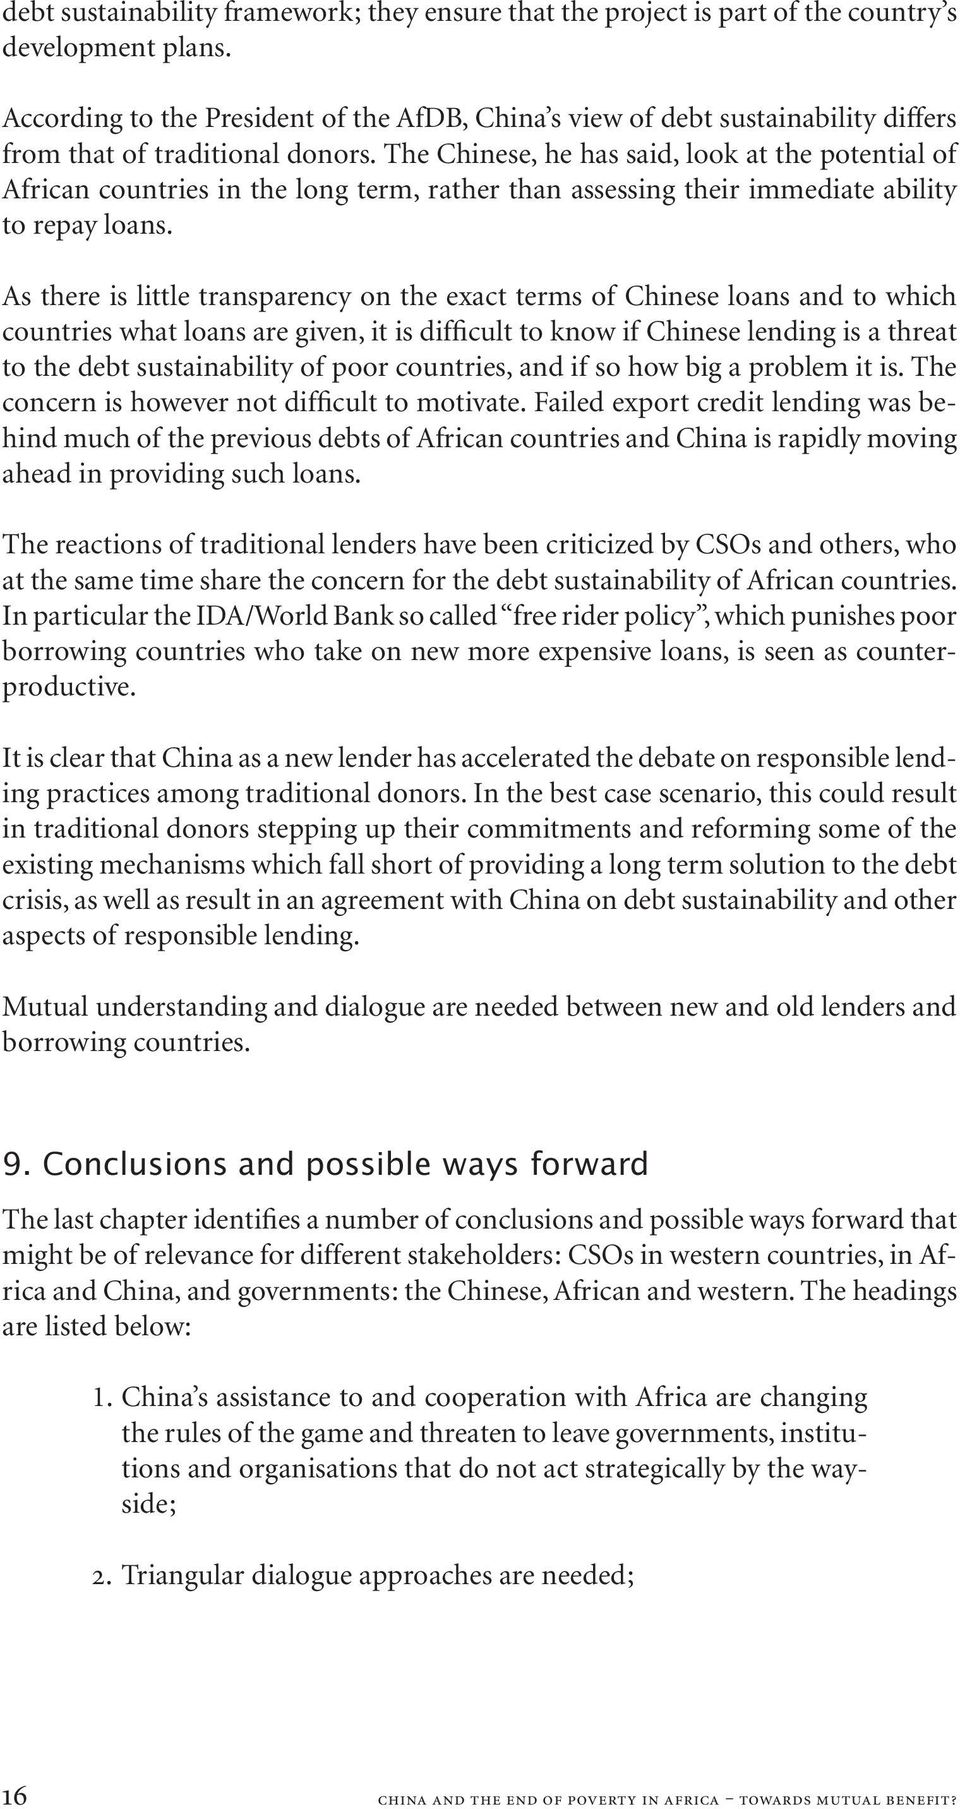 The Chinese, he has said, look at the potential of African countries in the long term, rather than assessing their immediate ability to repay loans.